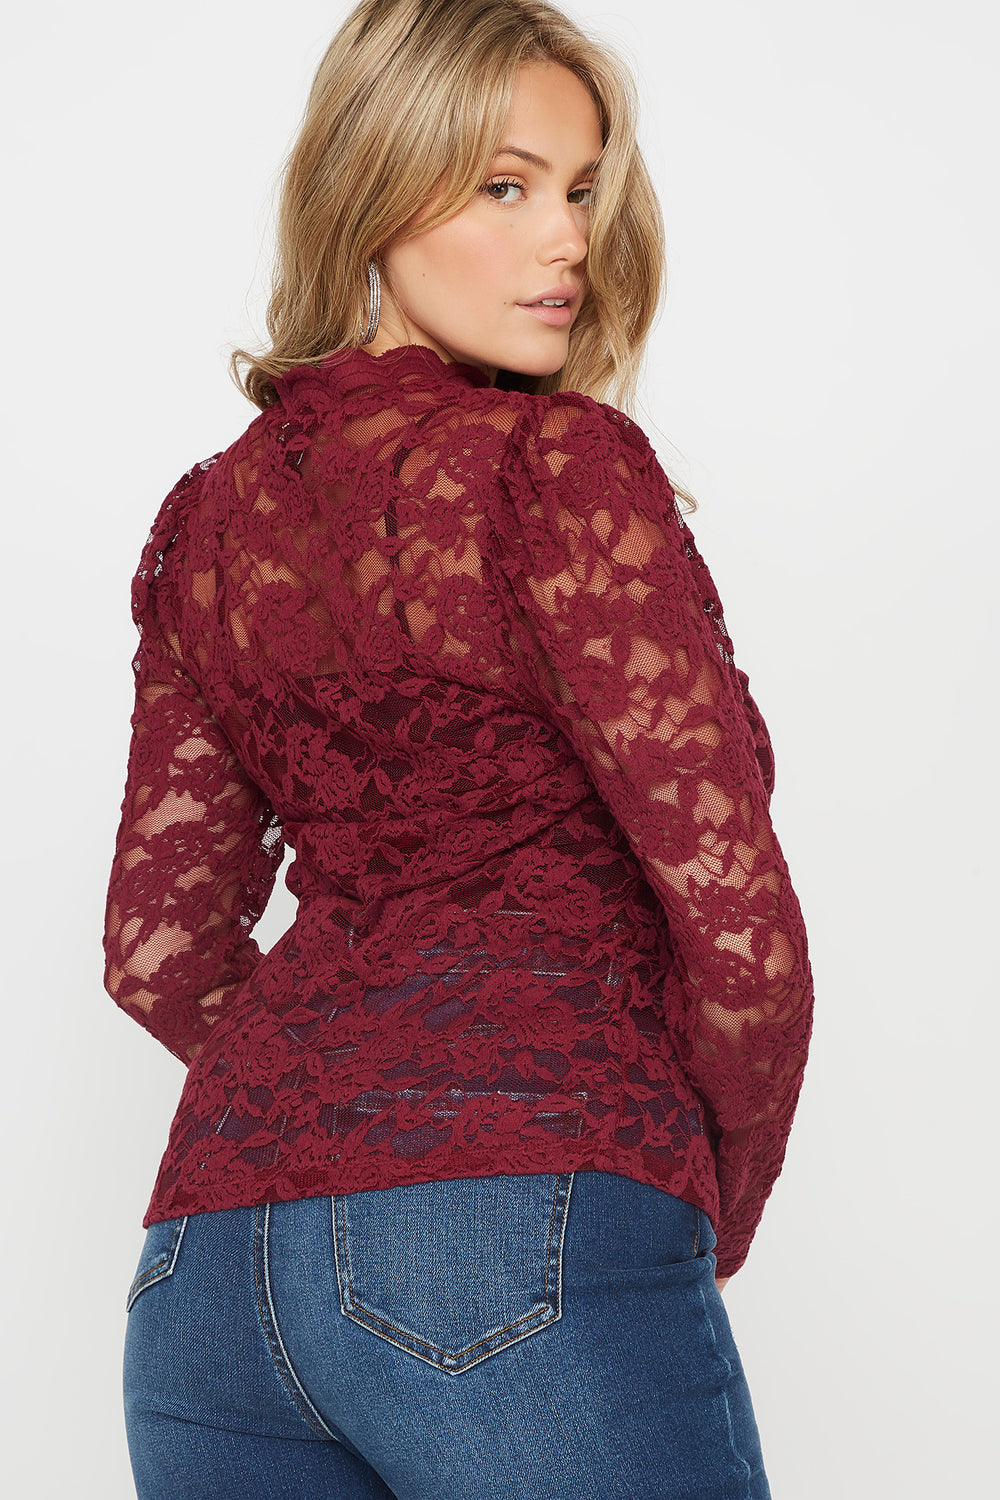 Plus Size Lace Mock Neck Long Sleeve Top Burgundy